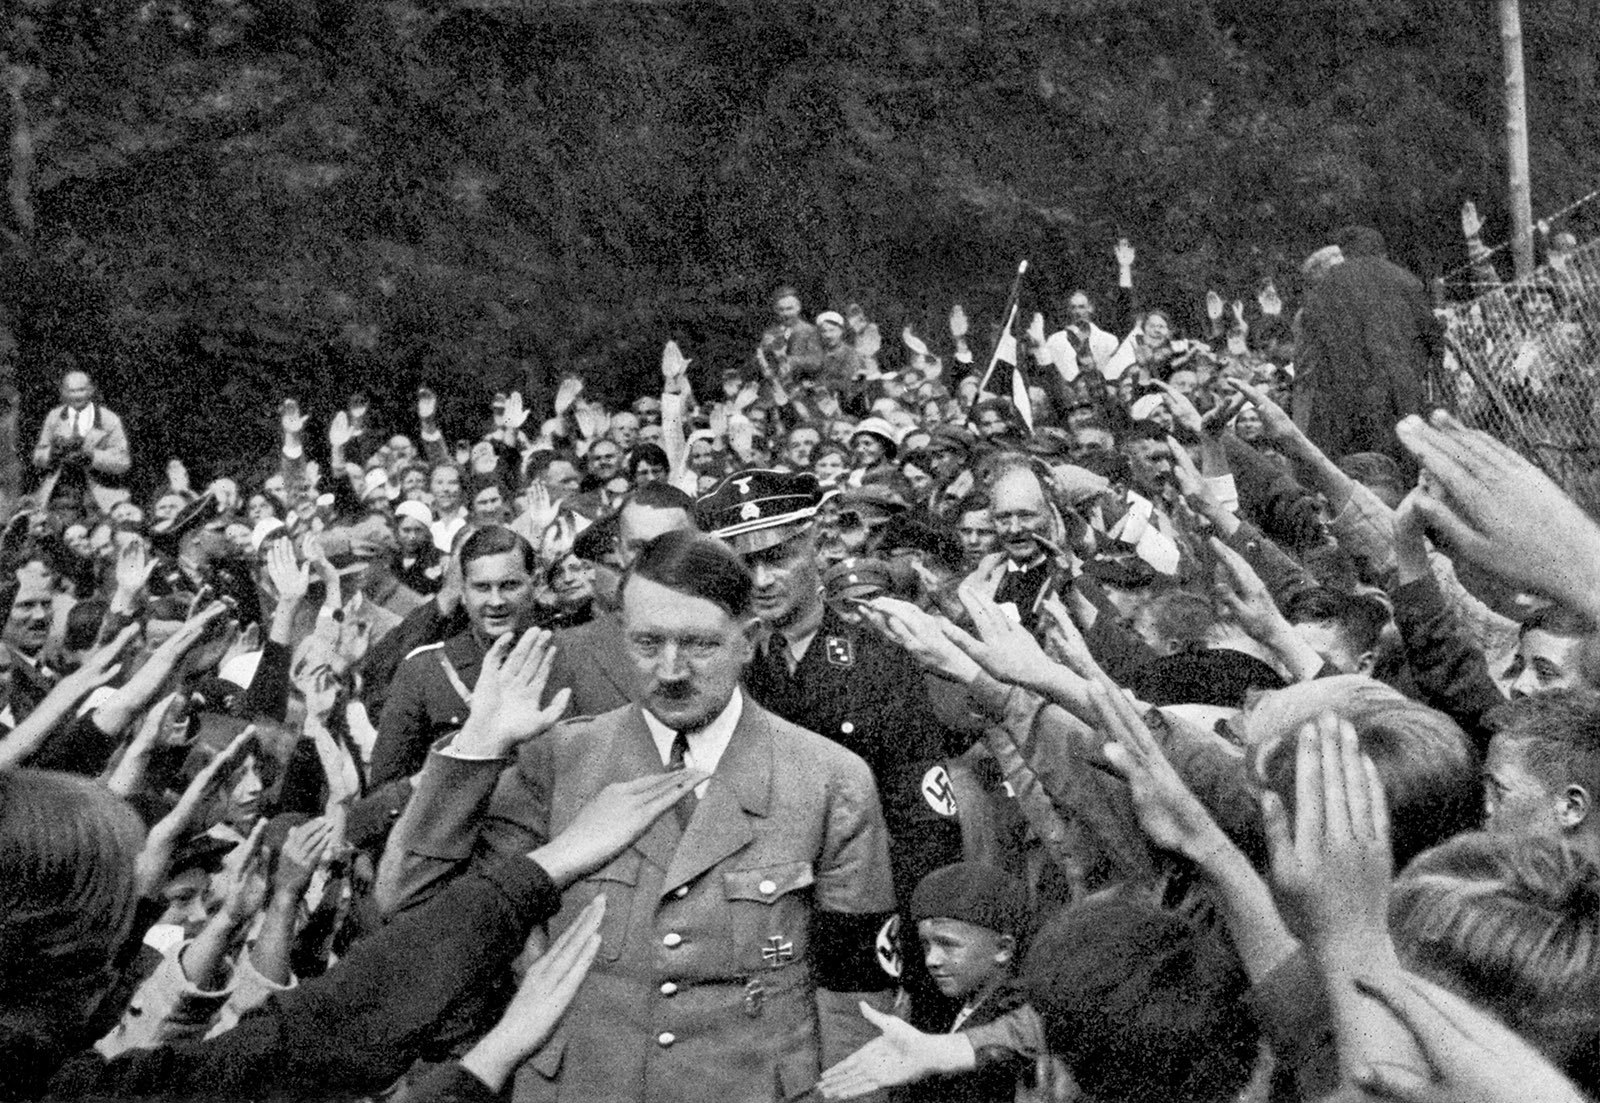 how did adolf hitler rise to Adolf hitler's rise to power began in germany in september 1919 when hitler  joined the  both hitler and esser were arrested, and hitler commented  notoriously to the police commissioner, it's all right we got what we wanted  ballerstedt did.